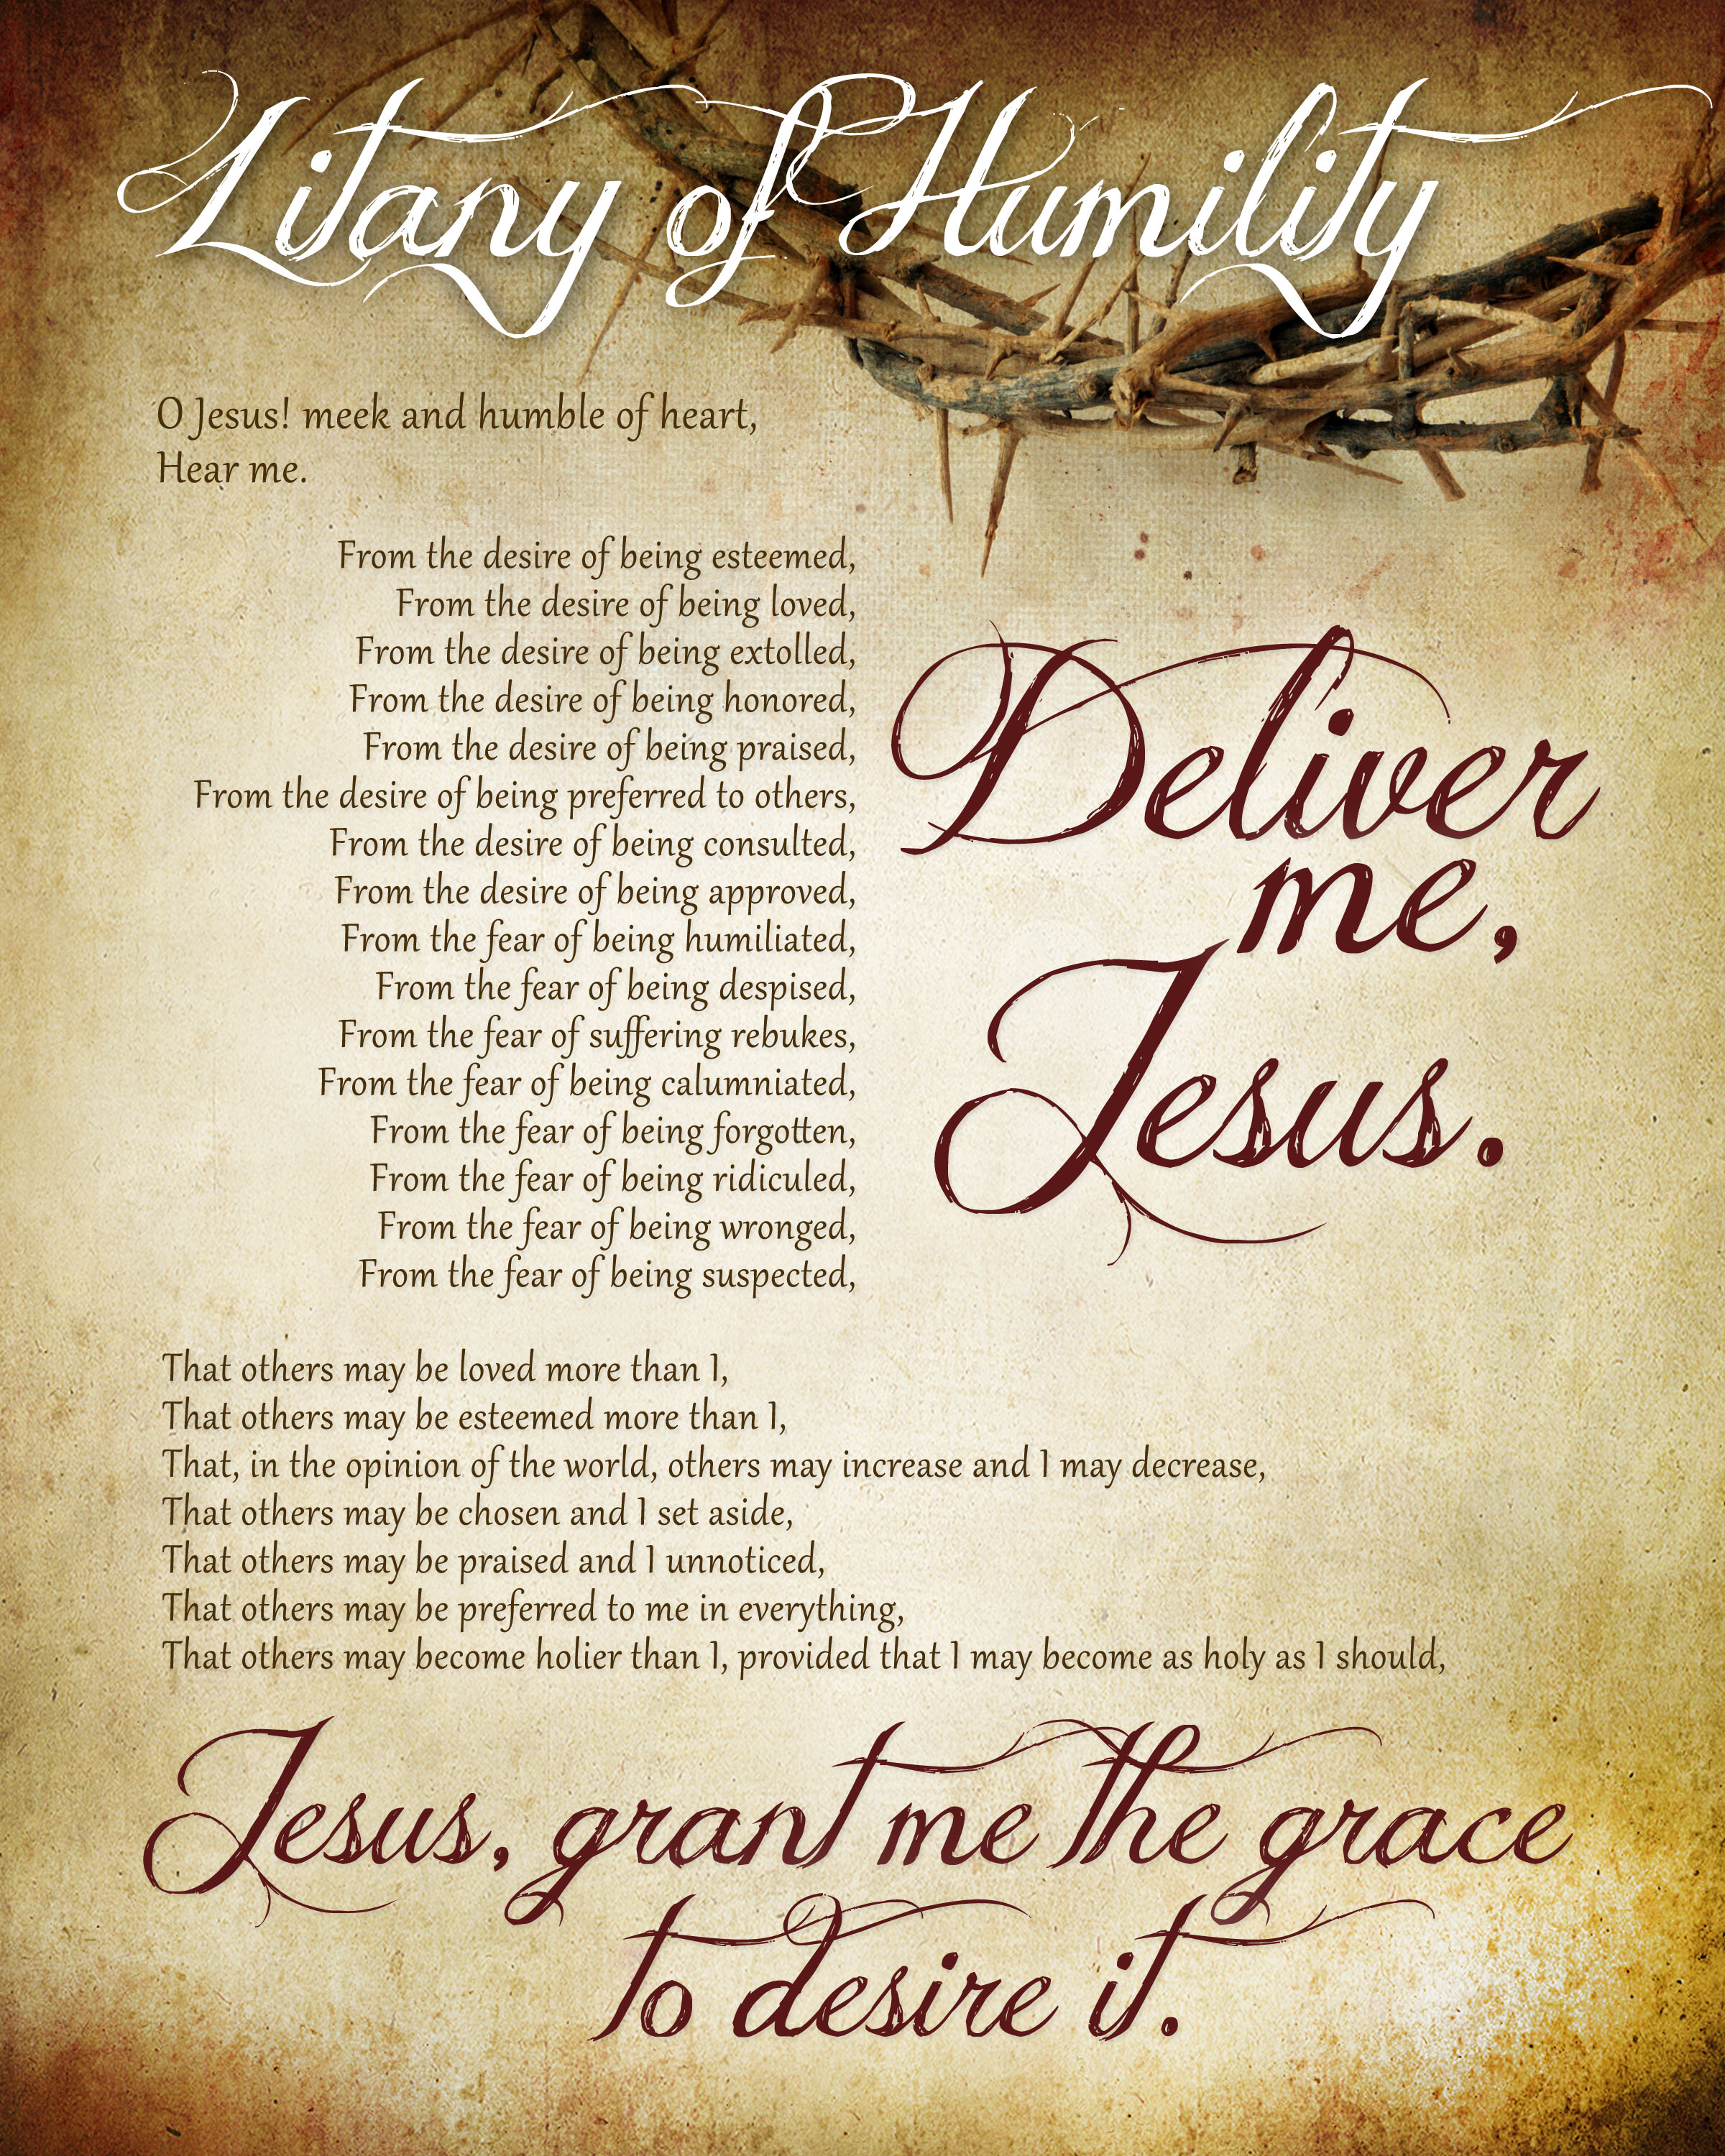 litany of humility